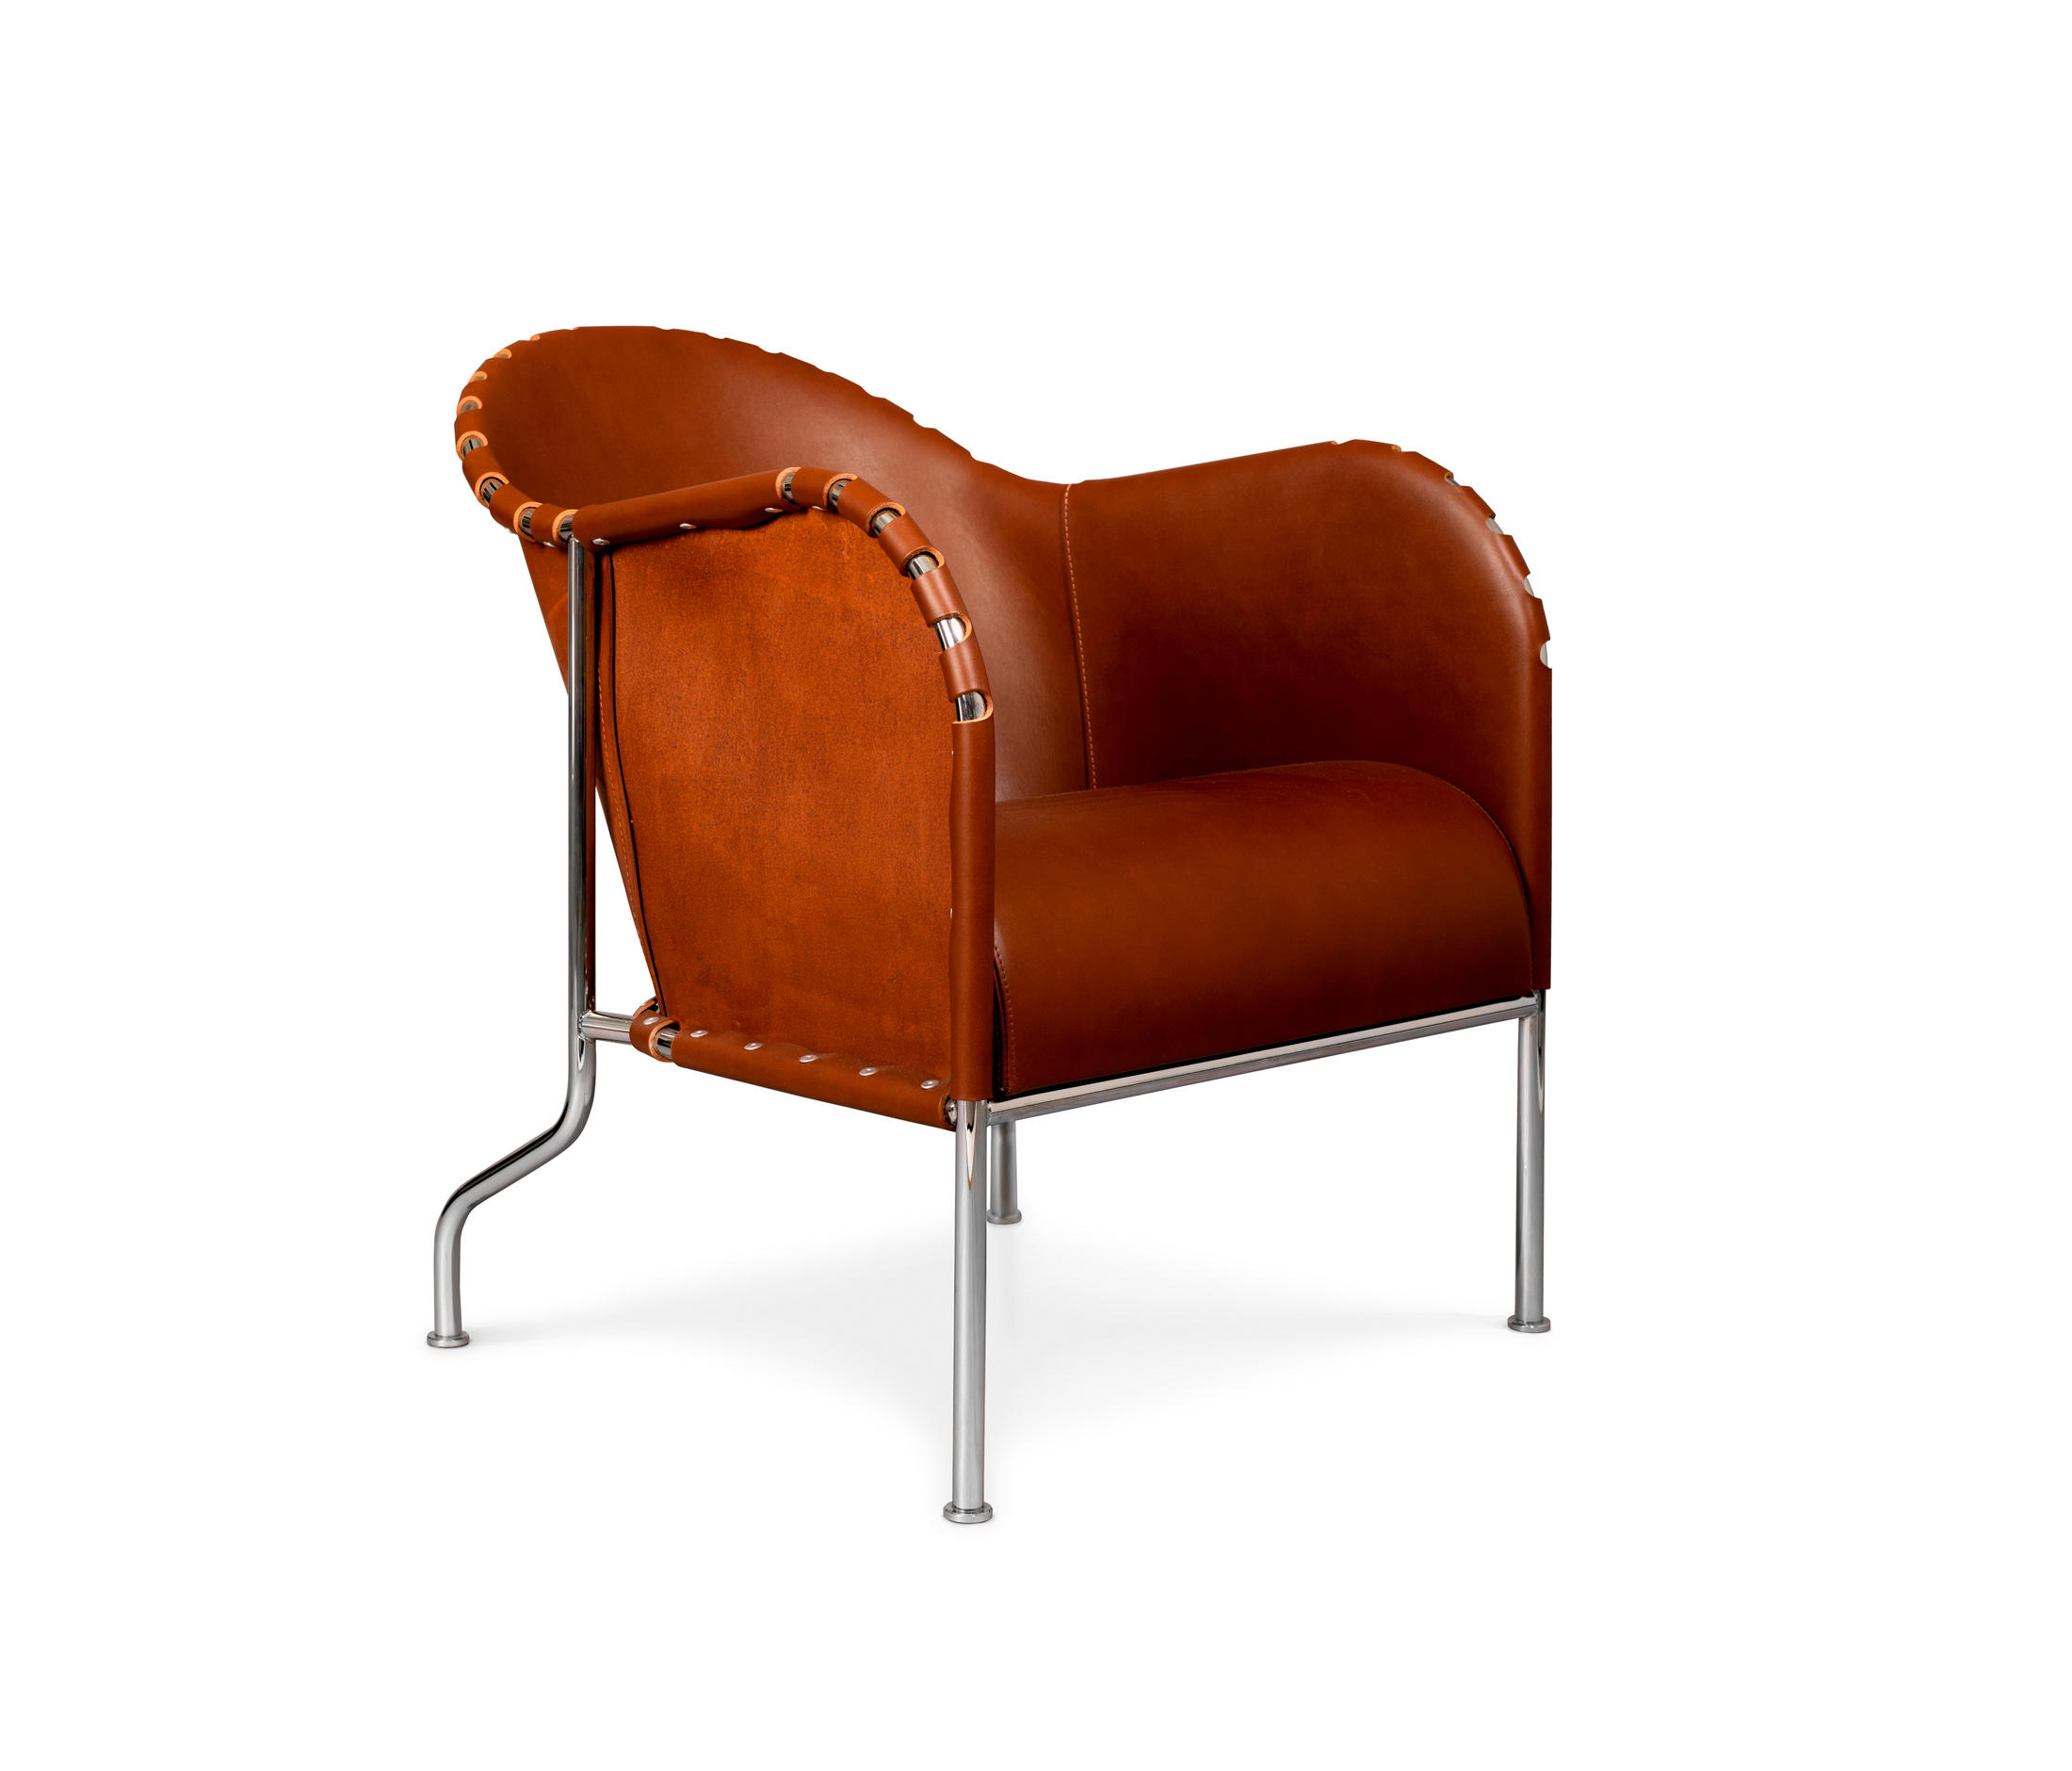 BRUNO Lounge chairs from Källemo